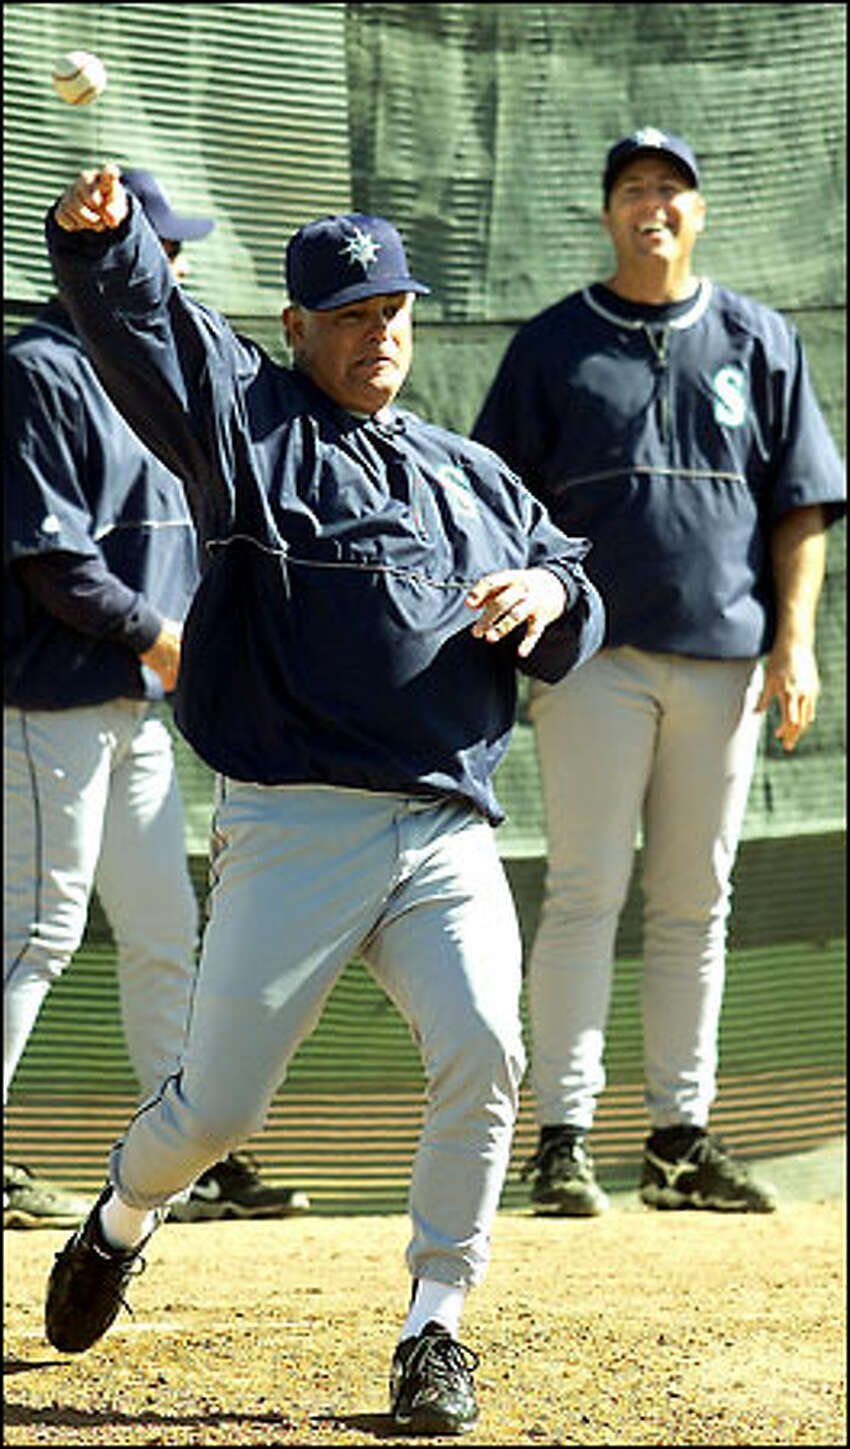 Lou Piniella shows off his pitching form, as pitching coach Bryan Price gets a good laugh.